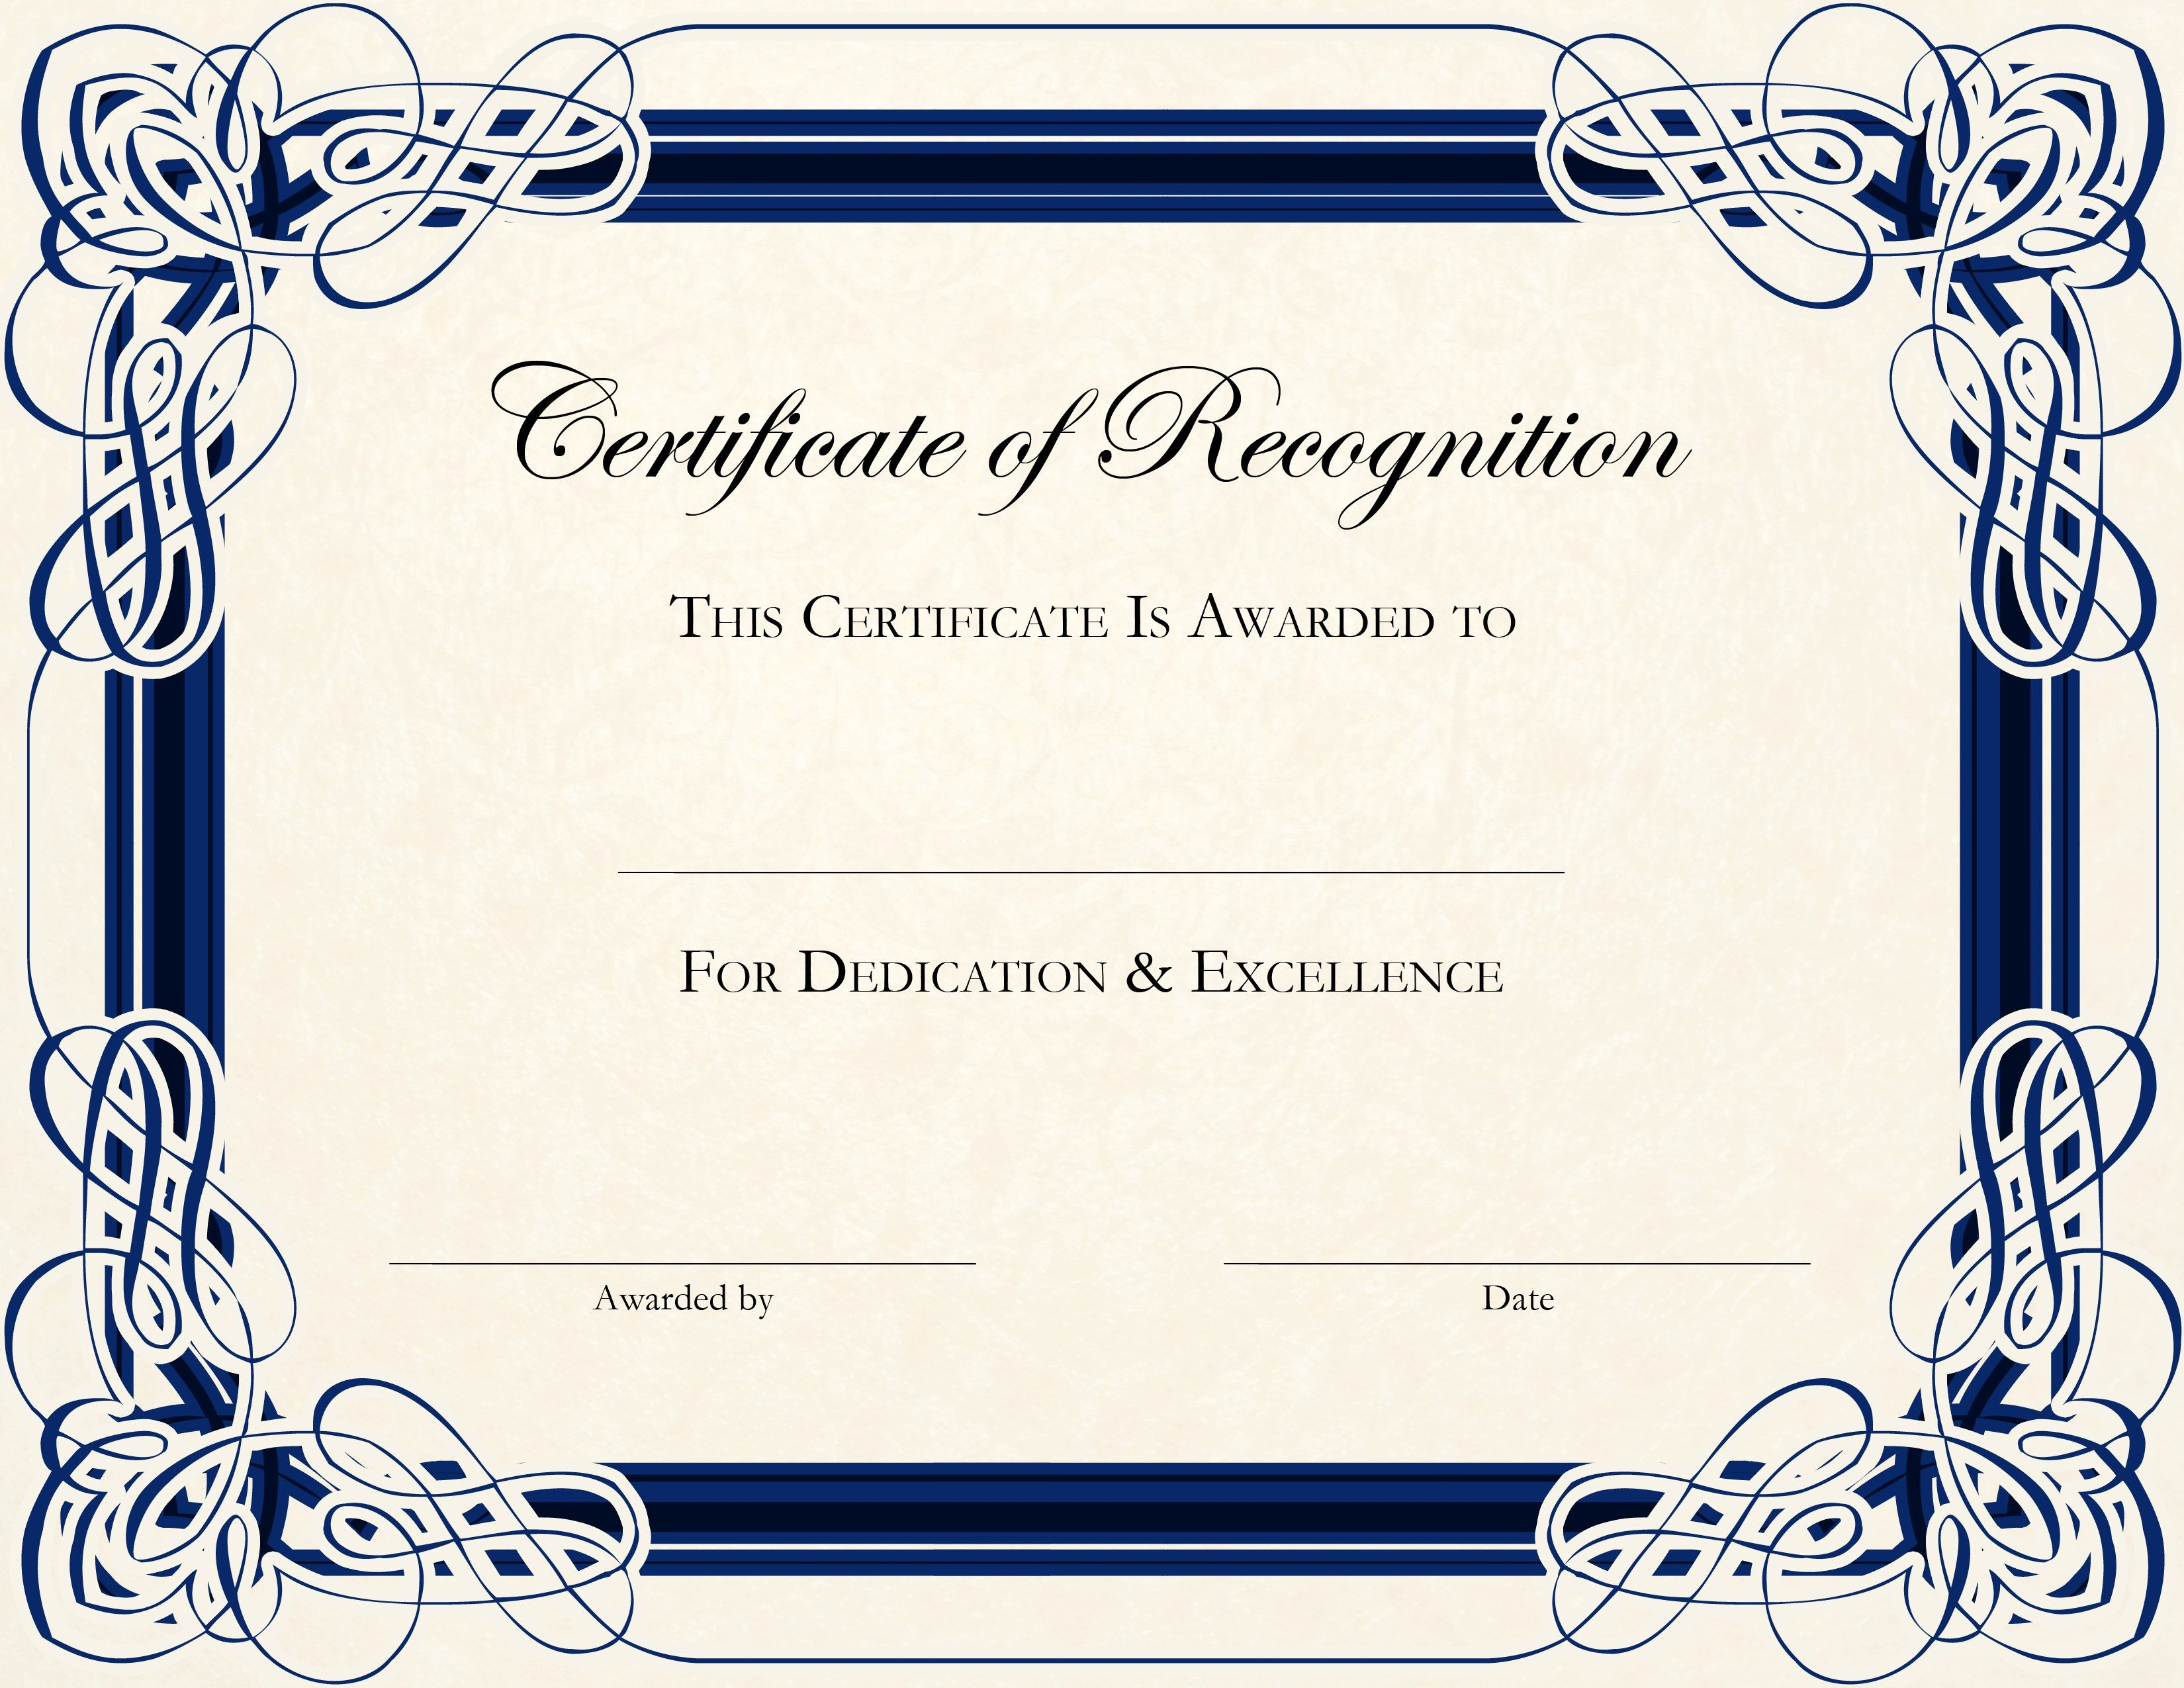 Free Printable Certificate Templates For Teachers | Besttemplate123 - Free Printable Templates For Certificates Of Recognition